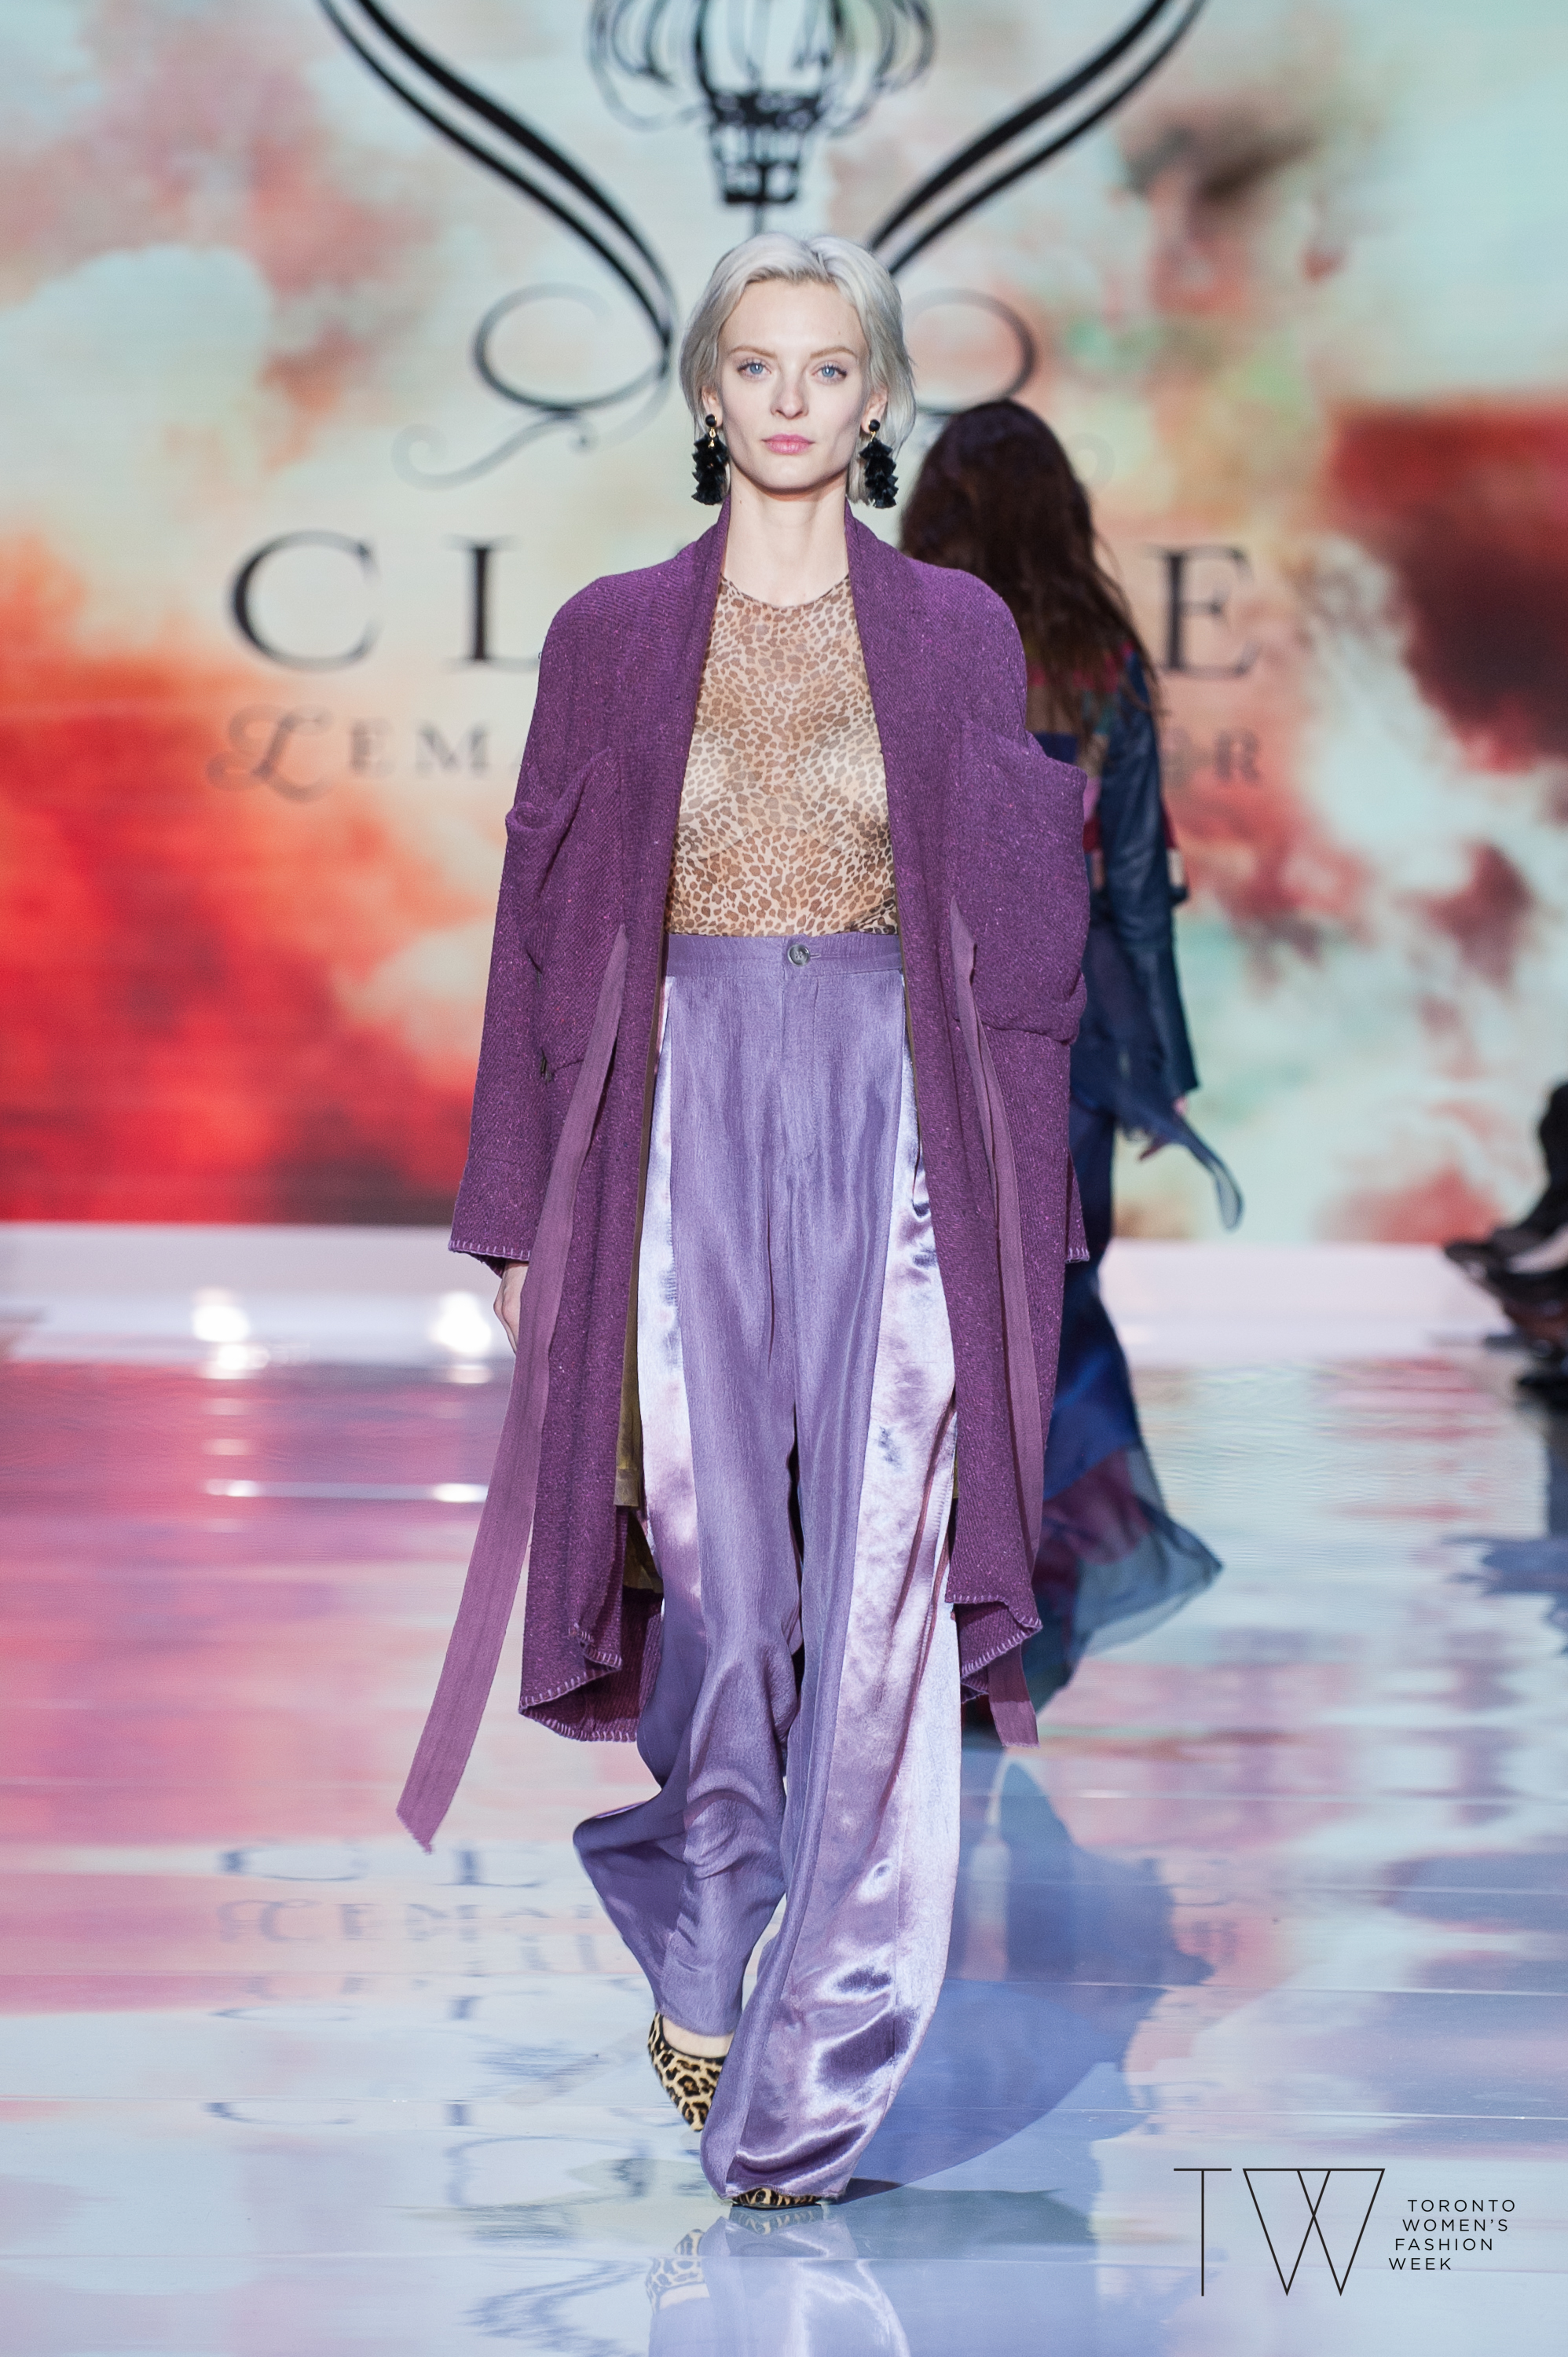 Claire Lemaitre Auger image courtesy of Toronto Women's Fashion Week